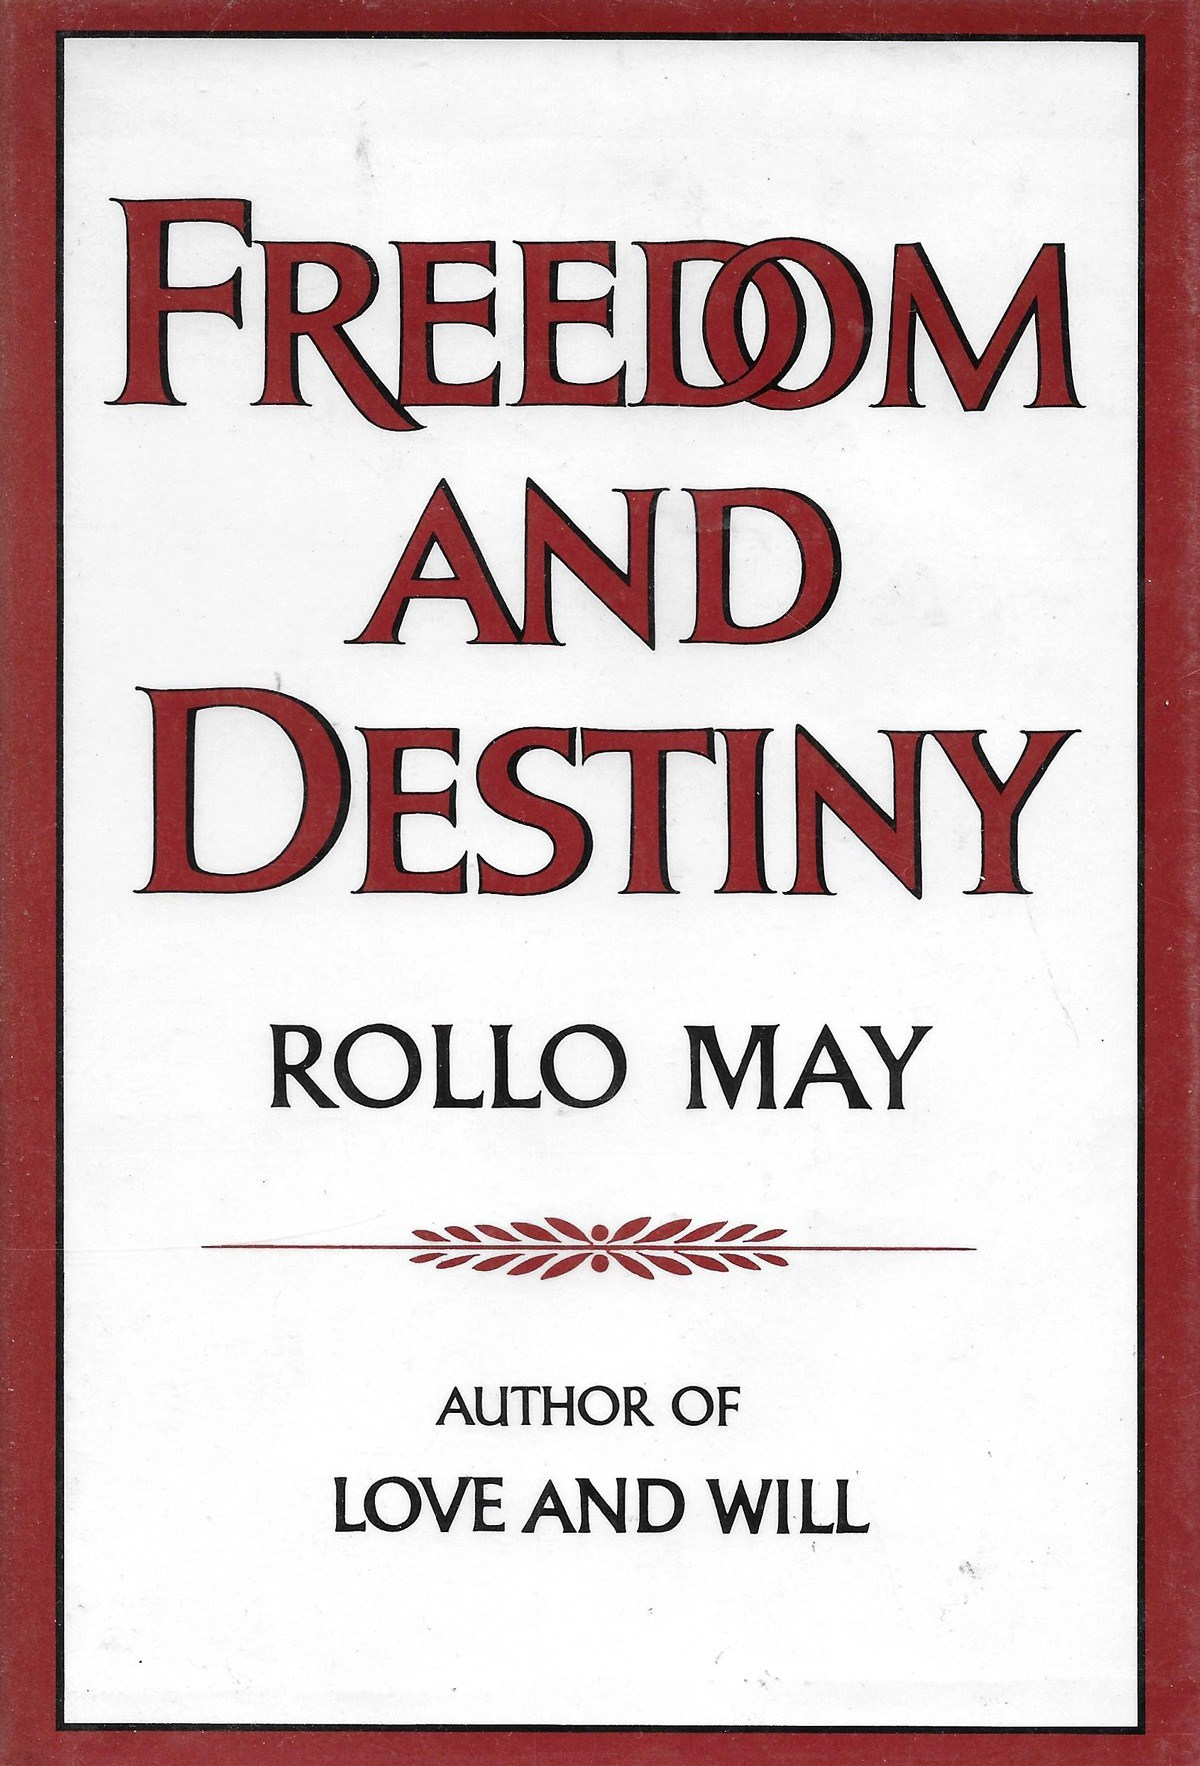 Rollo Express Freedom And Destiny Rollo May On The Constructiveness Of Despair